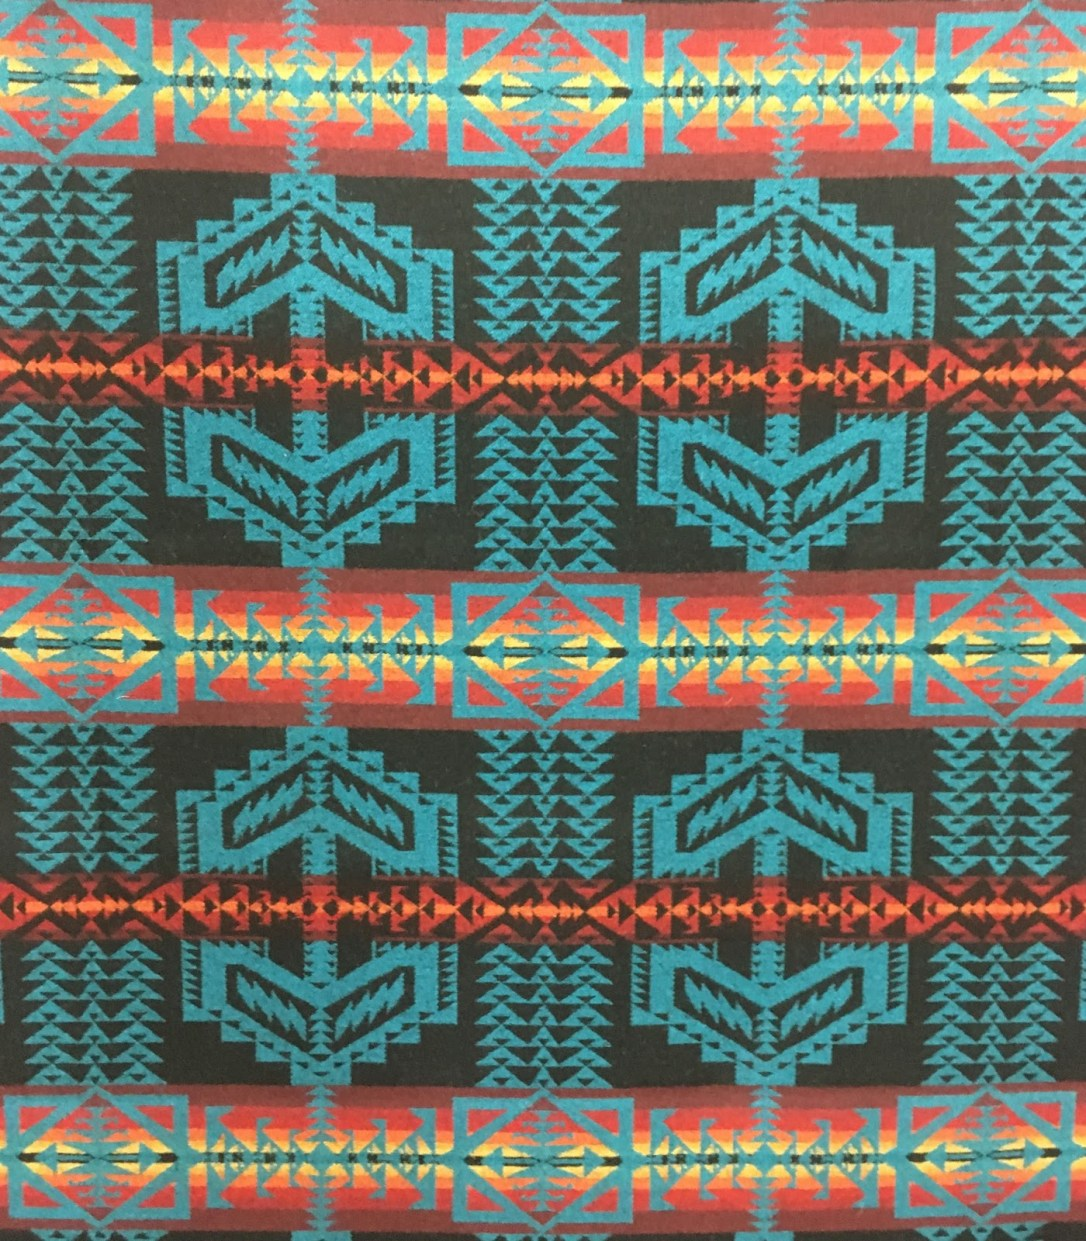 Swatch of Pendleton wool fabric in Turquoise Trail, with black background and bold geometric pattern in bright colors, with turquoise medallions and stripes of red, orange and yellow.